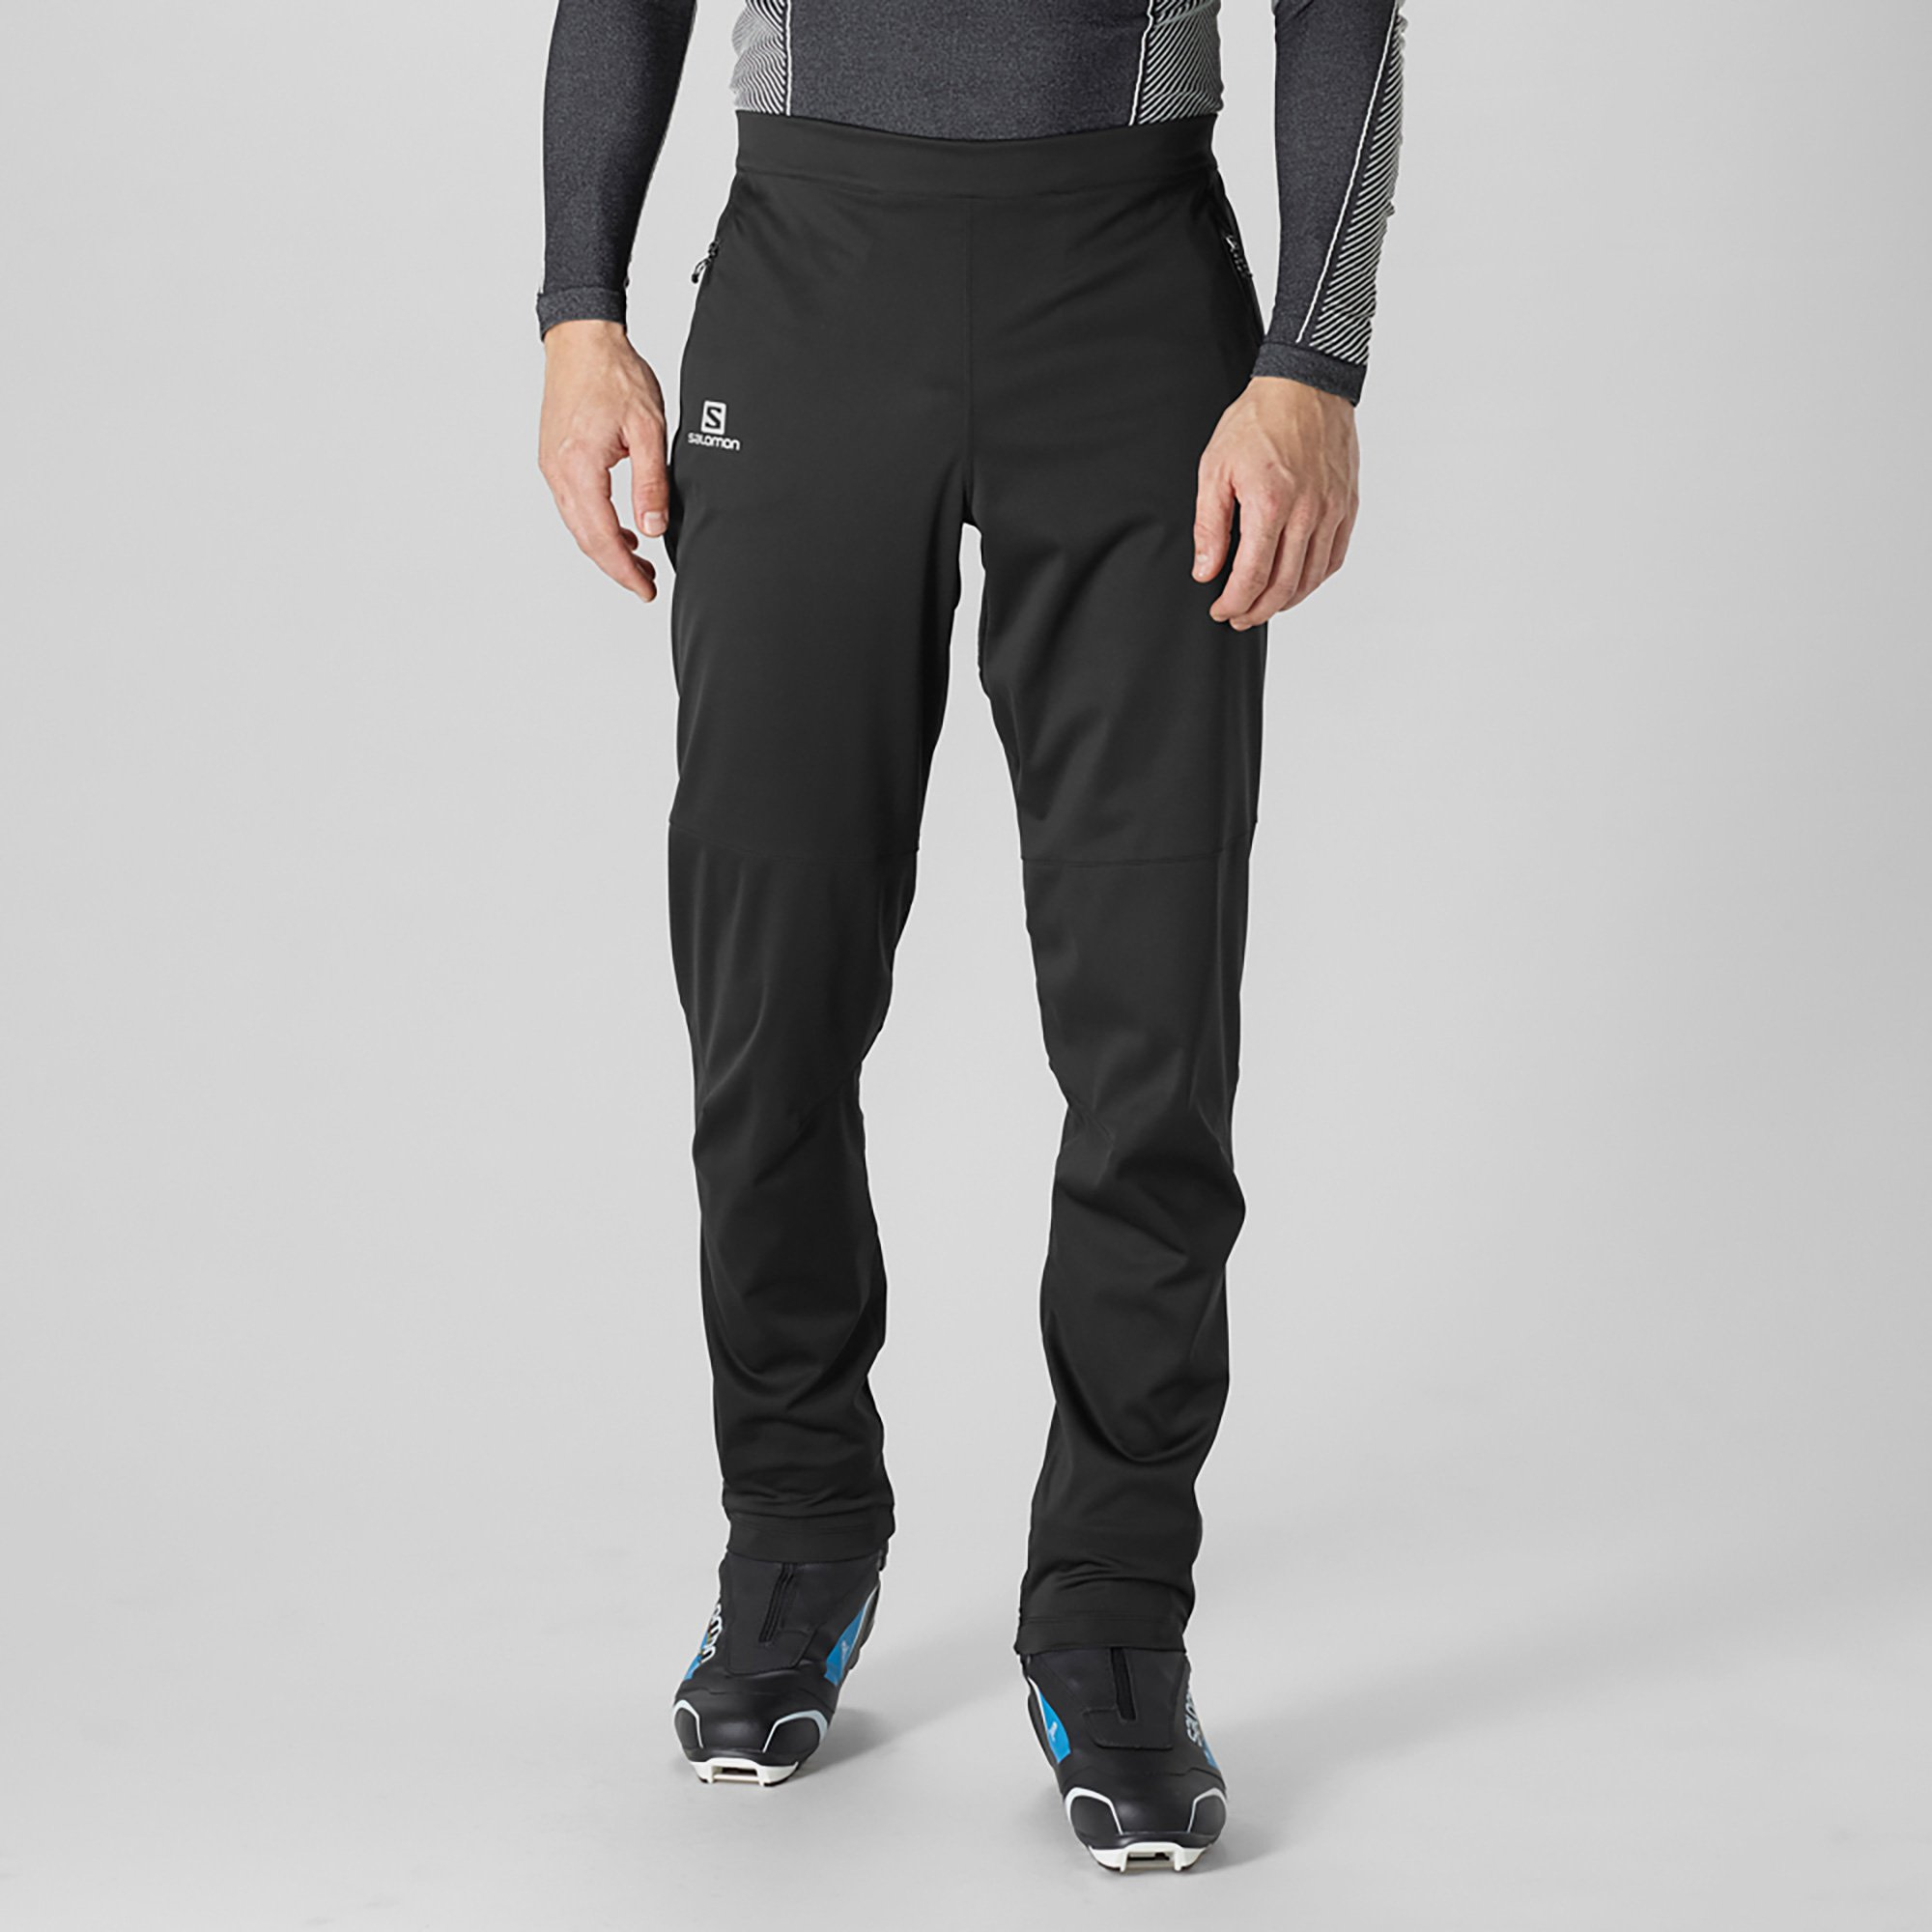 RS Softshell Pant Black - Men's